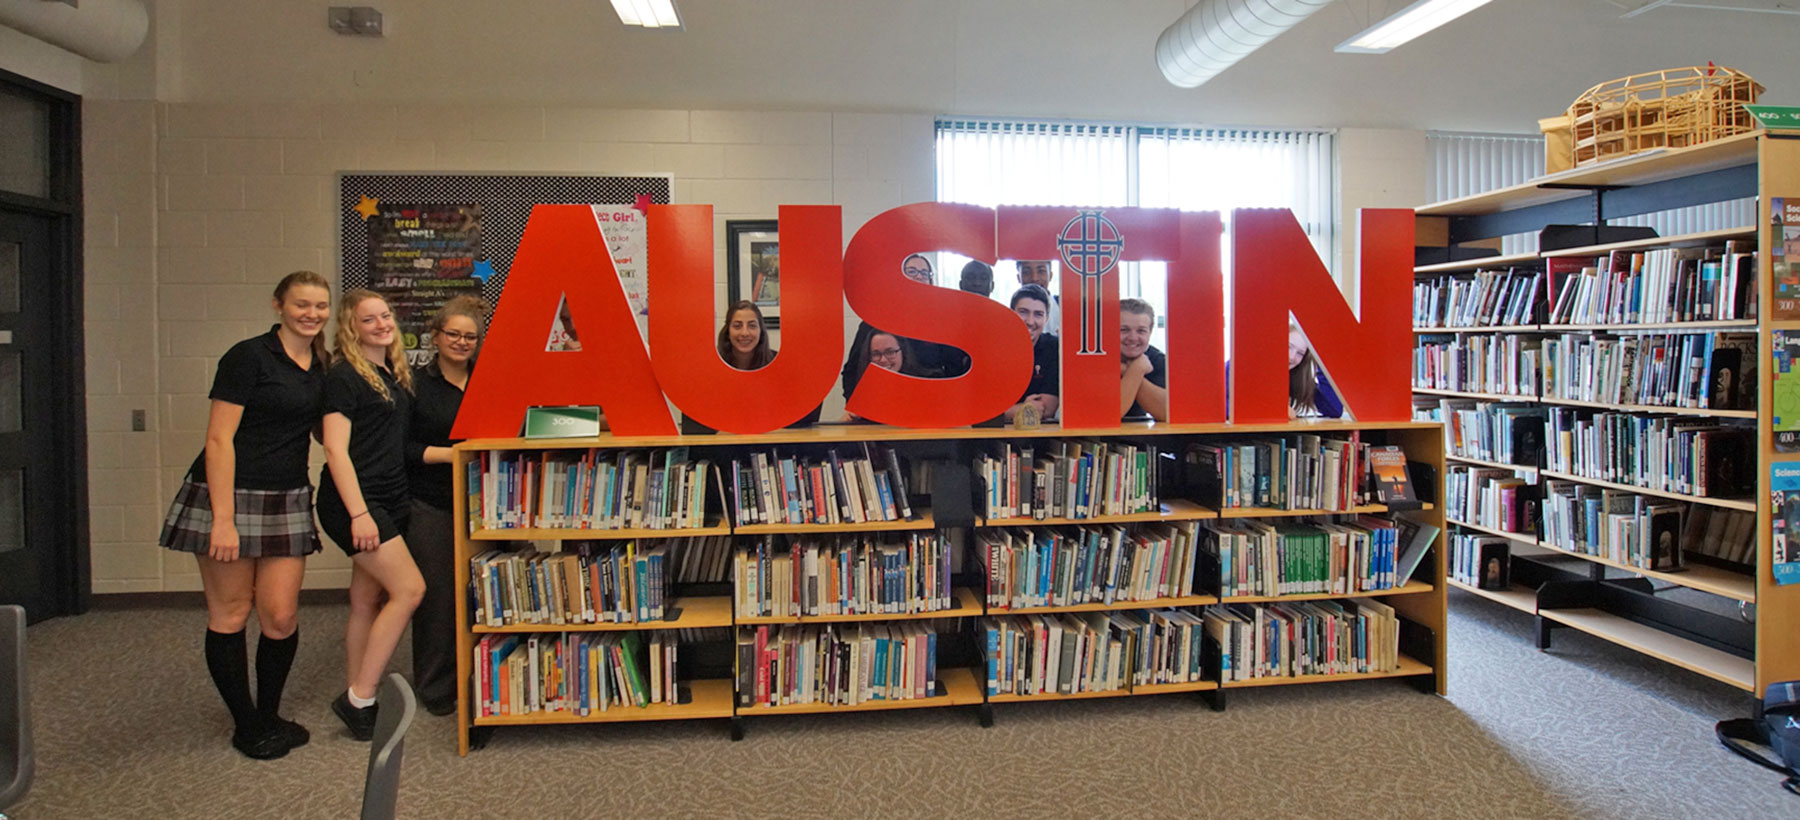 Students standing behind Austin sign - peaking through letters